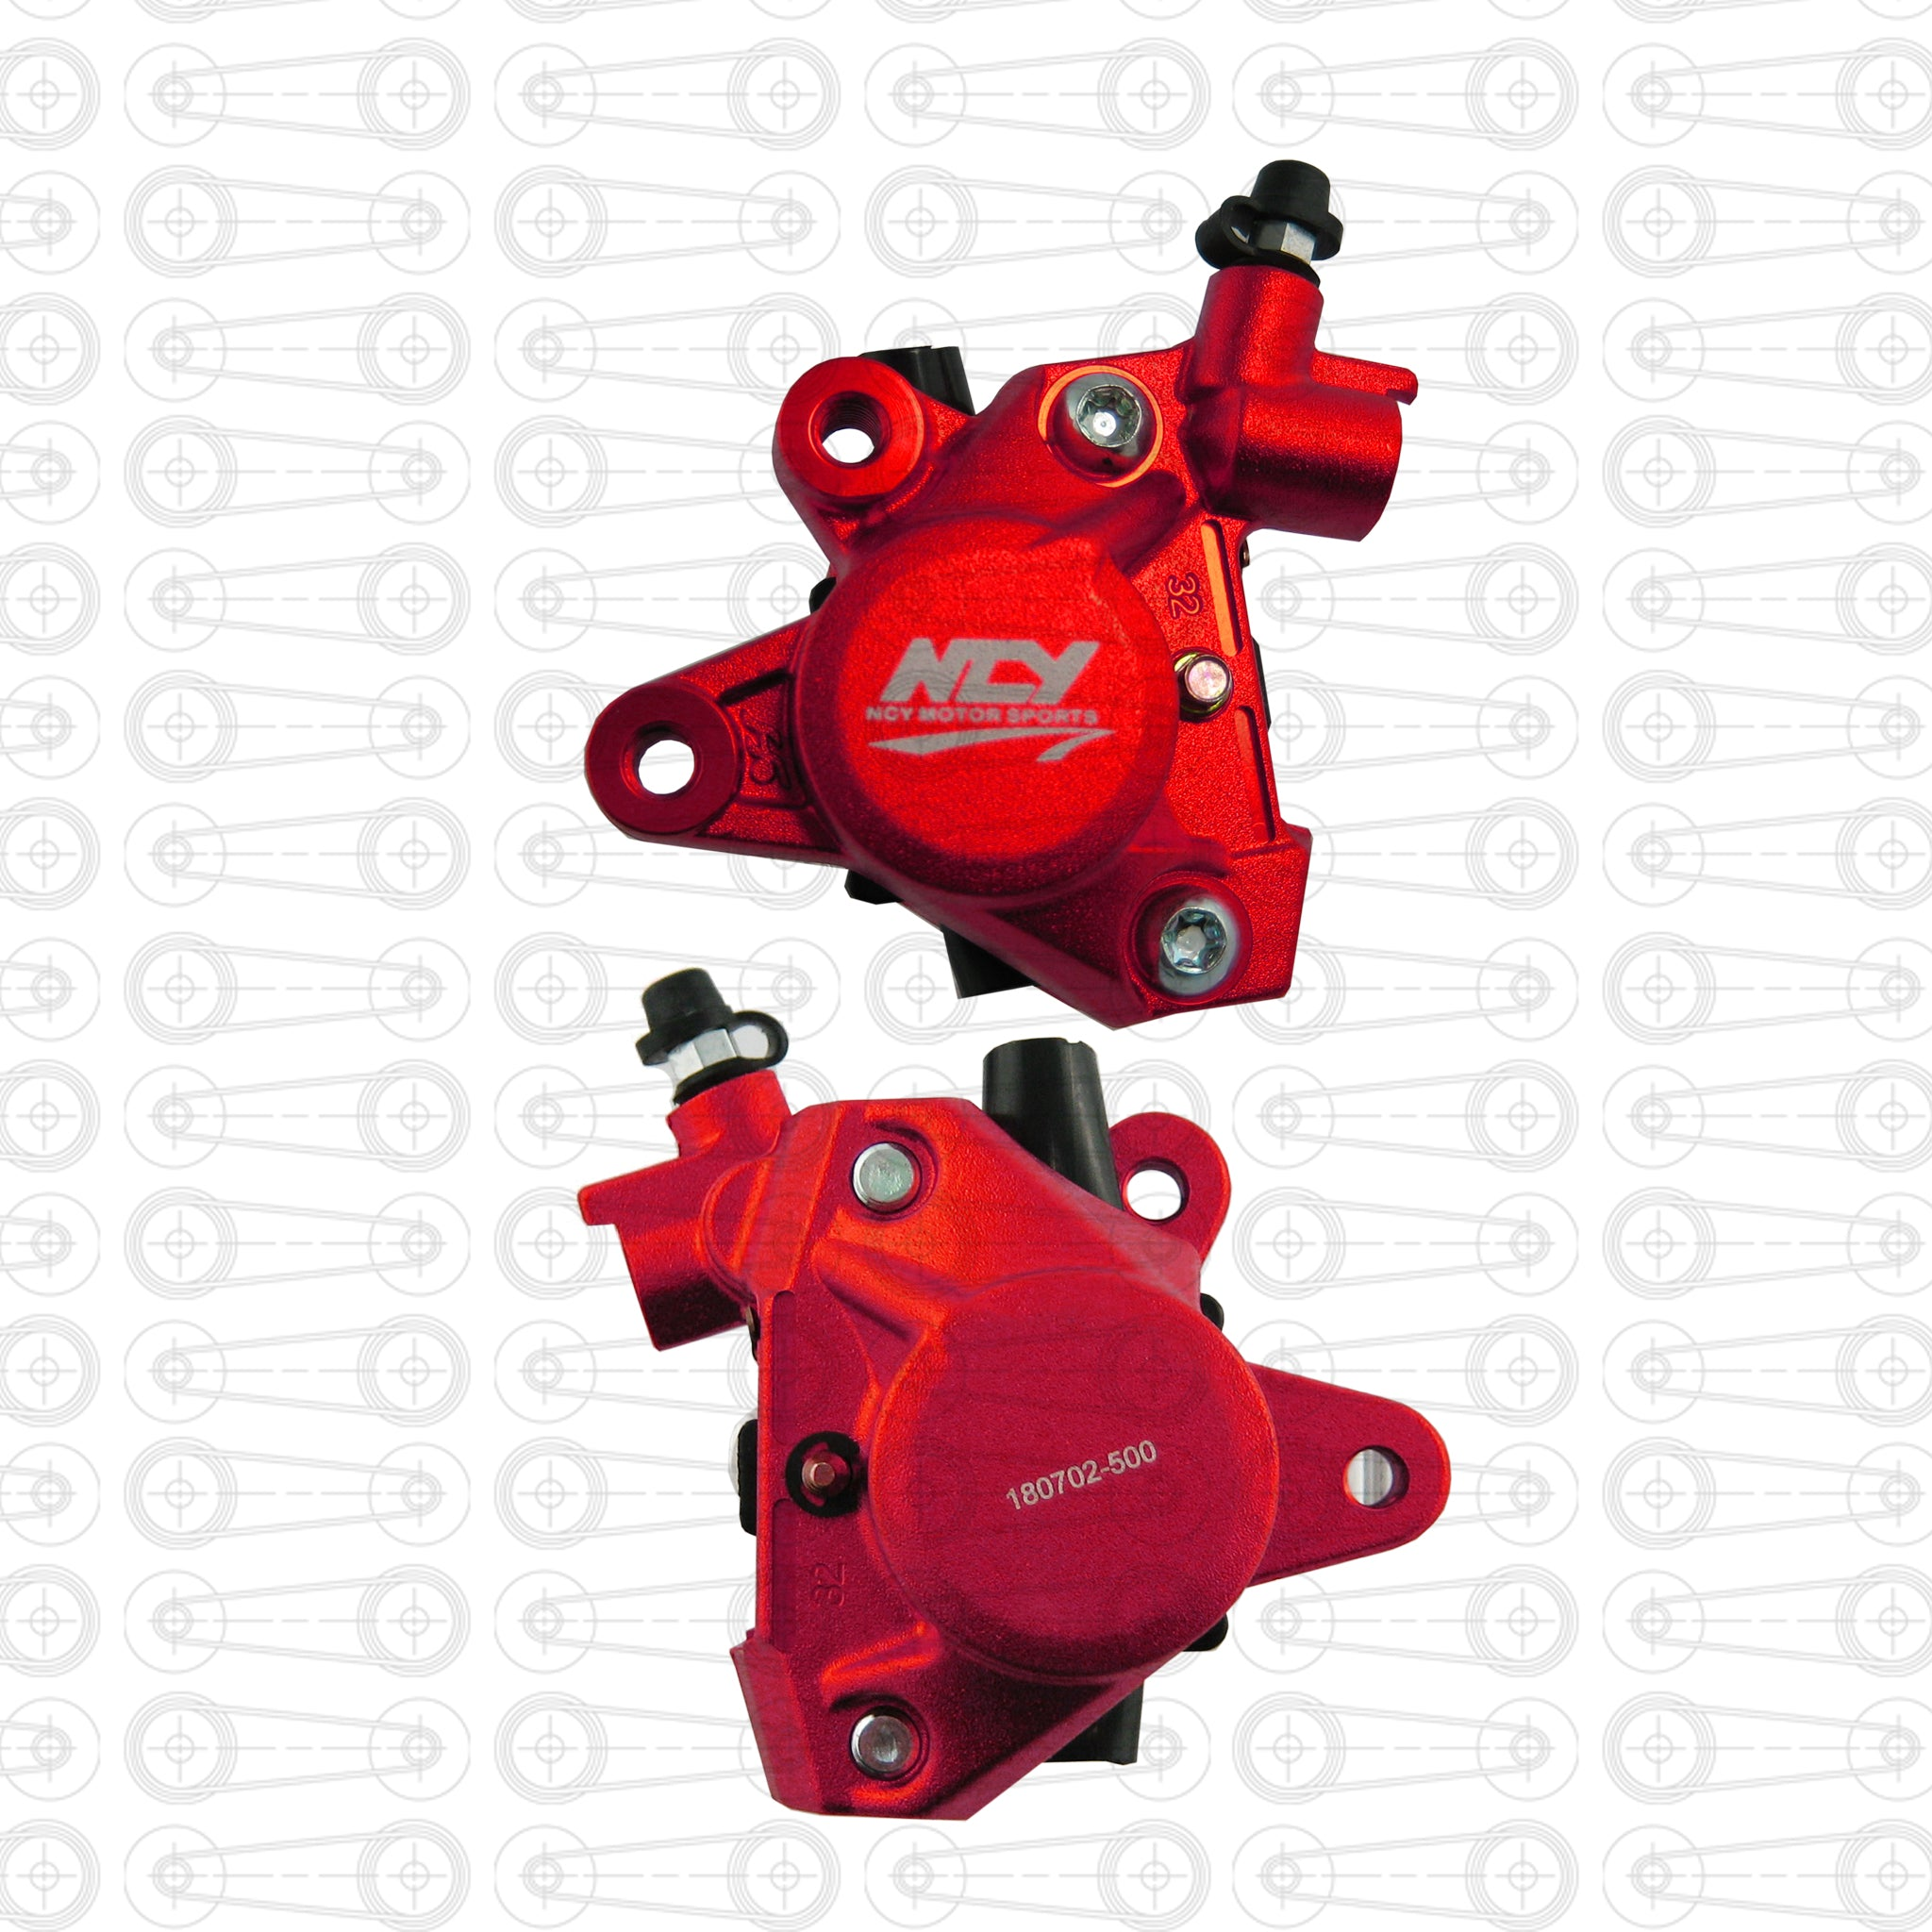 NCY - BRAKE CALIPER (Red)